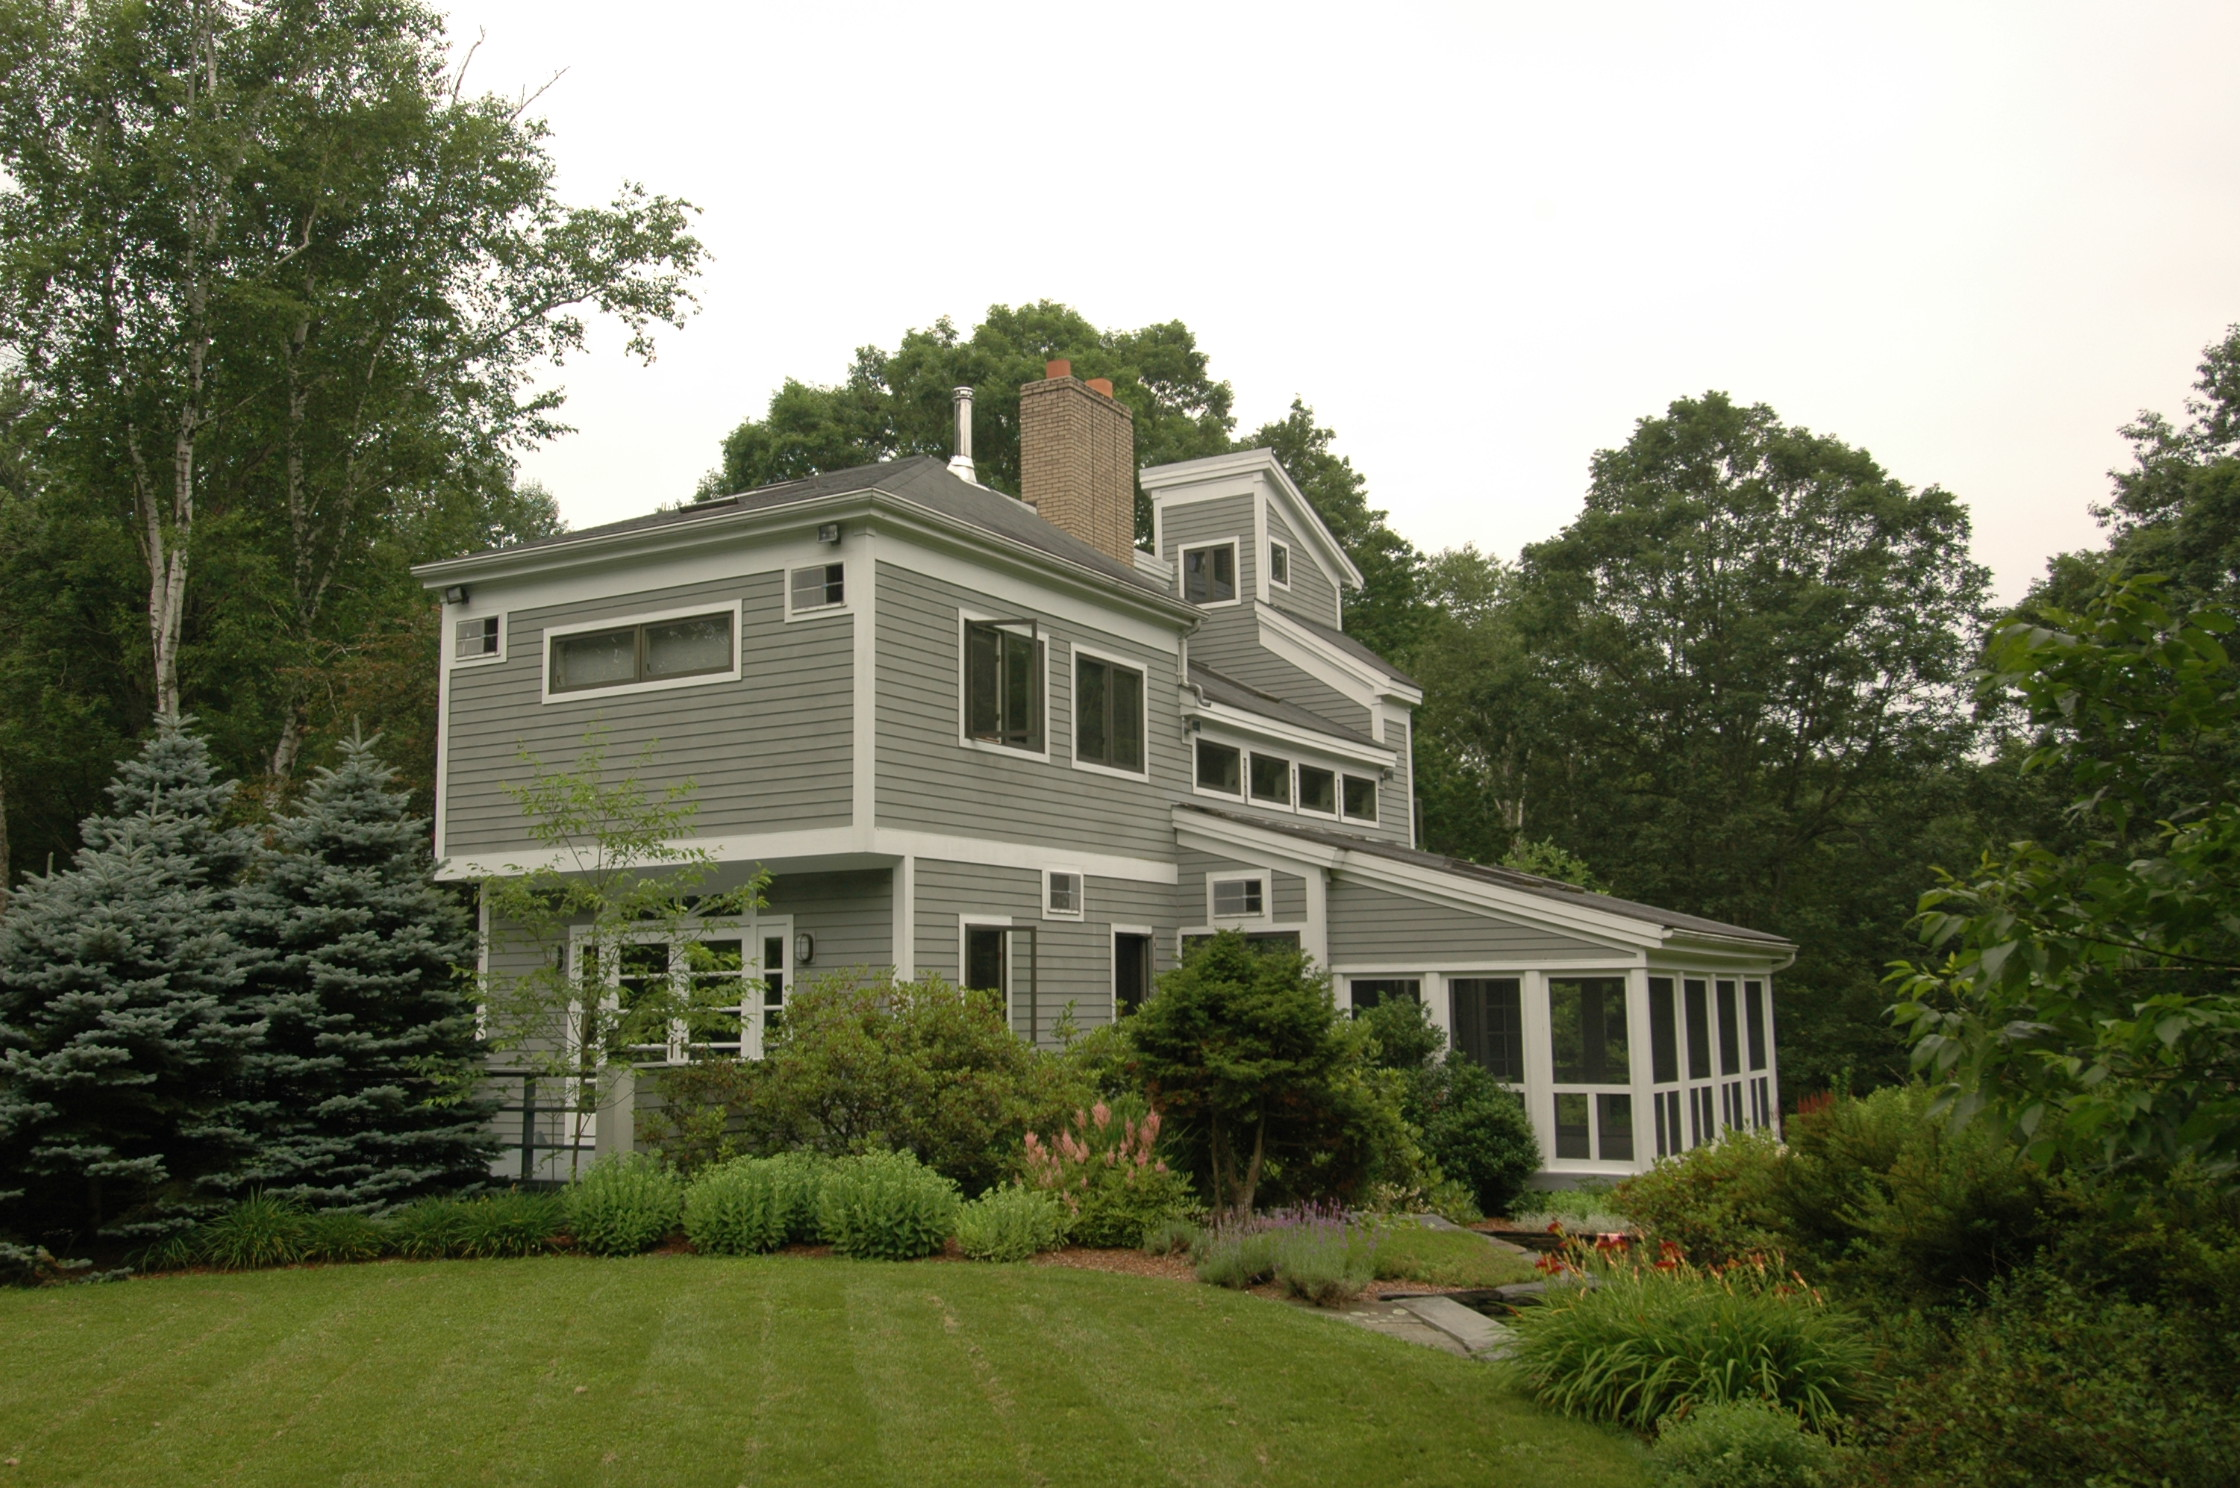 WEST CENTER RD RESIDENCE, WEST STOCKBRIDGE, MA   Designed as a full time residence for a retired bachelor whose interests lean to towards traveling, cooking, and automobiles, this house represents the culmination of years spent planning his dream house in a very specific and detailed approach.